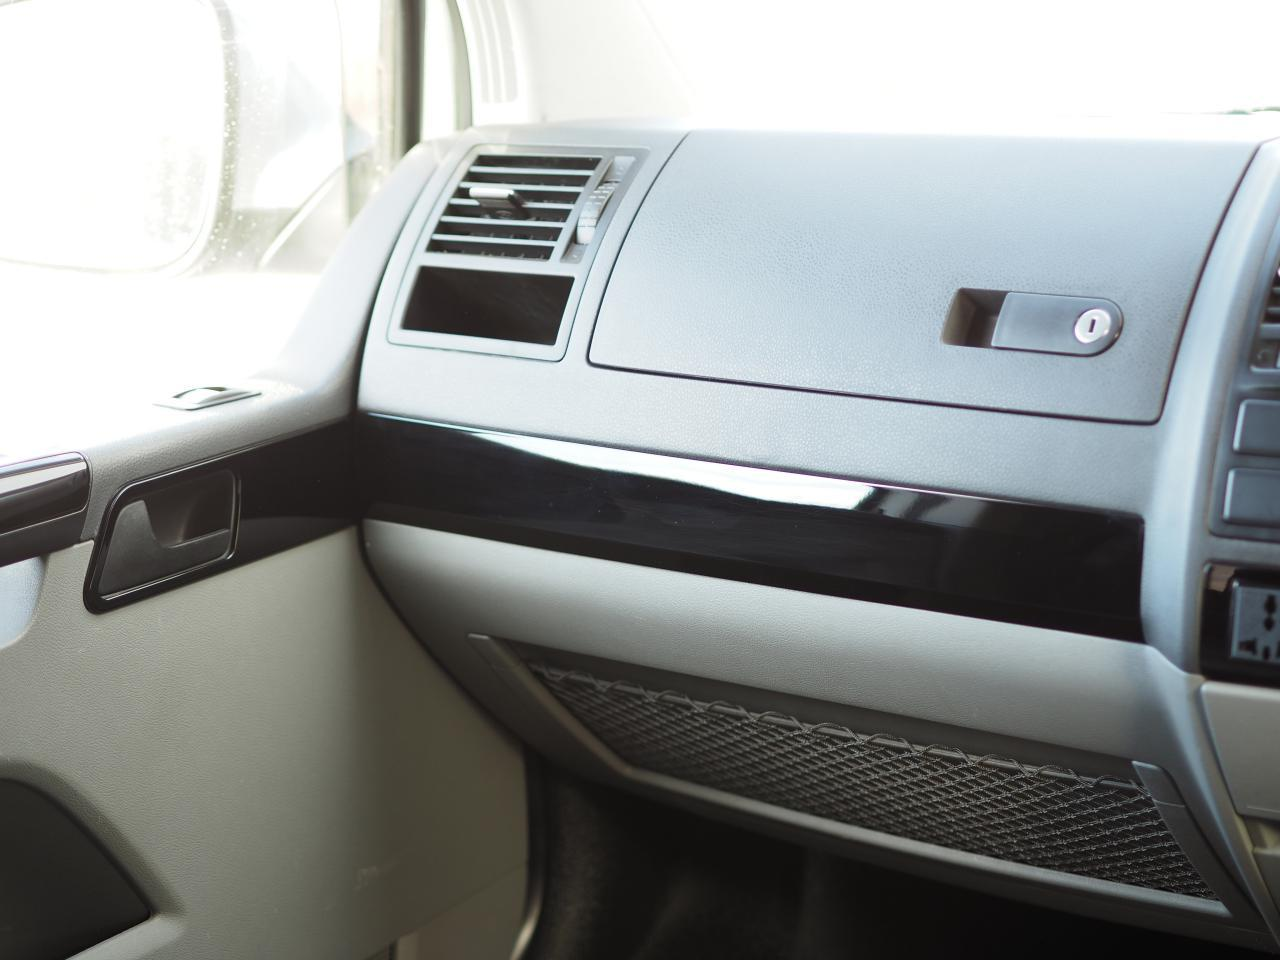 VW T5 Comfort Dash Interior Full Styling Kit